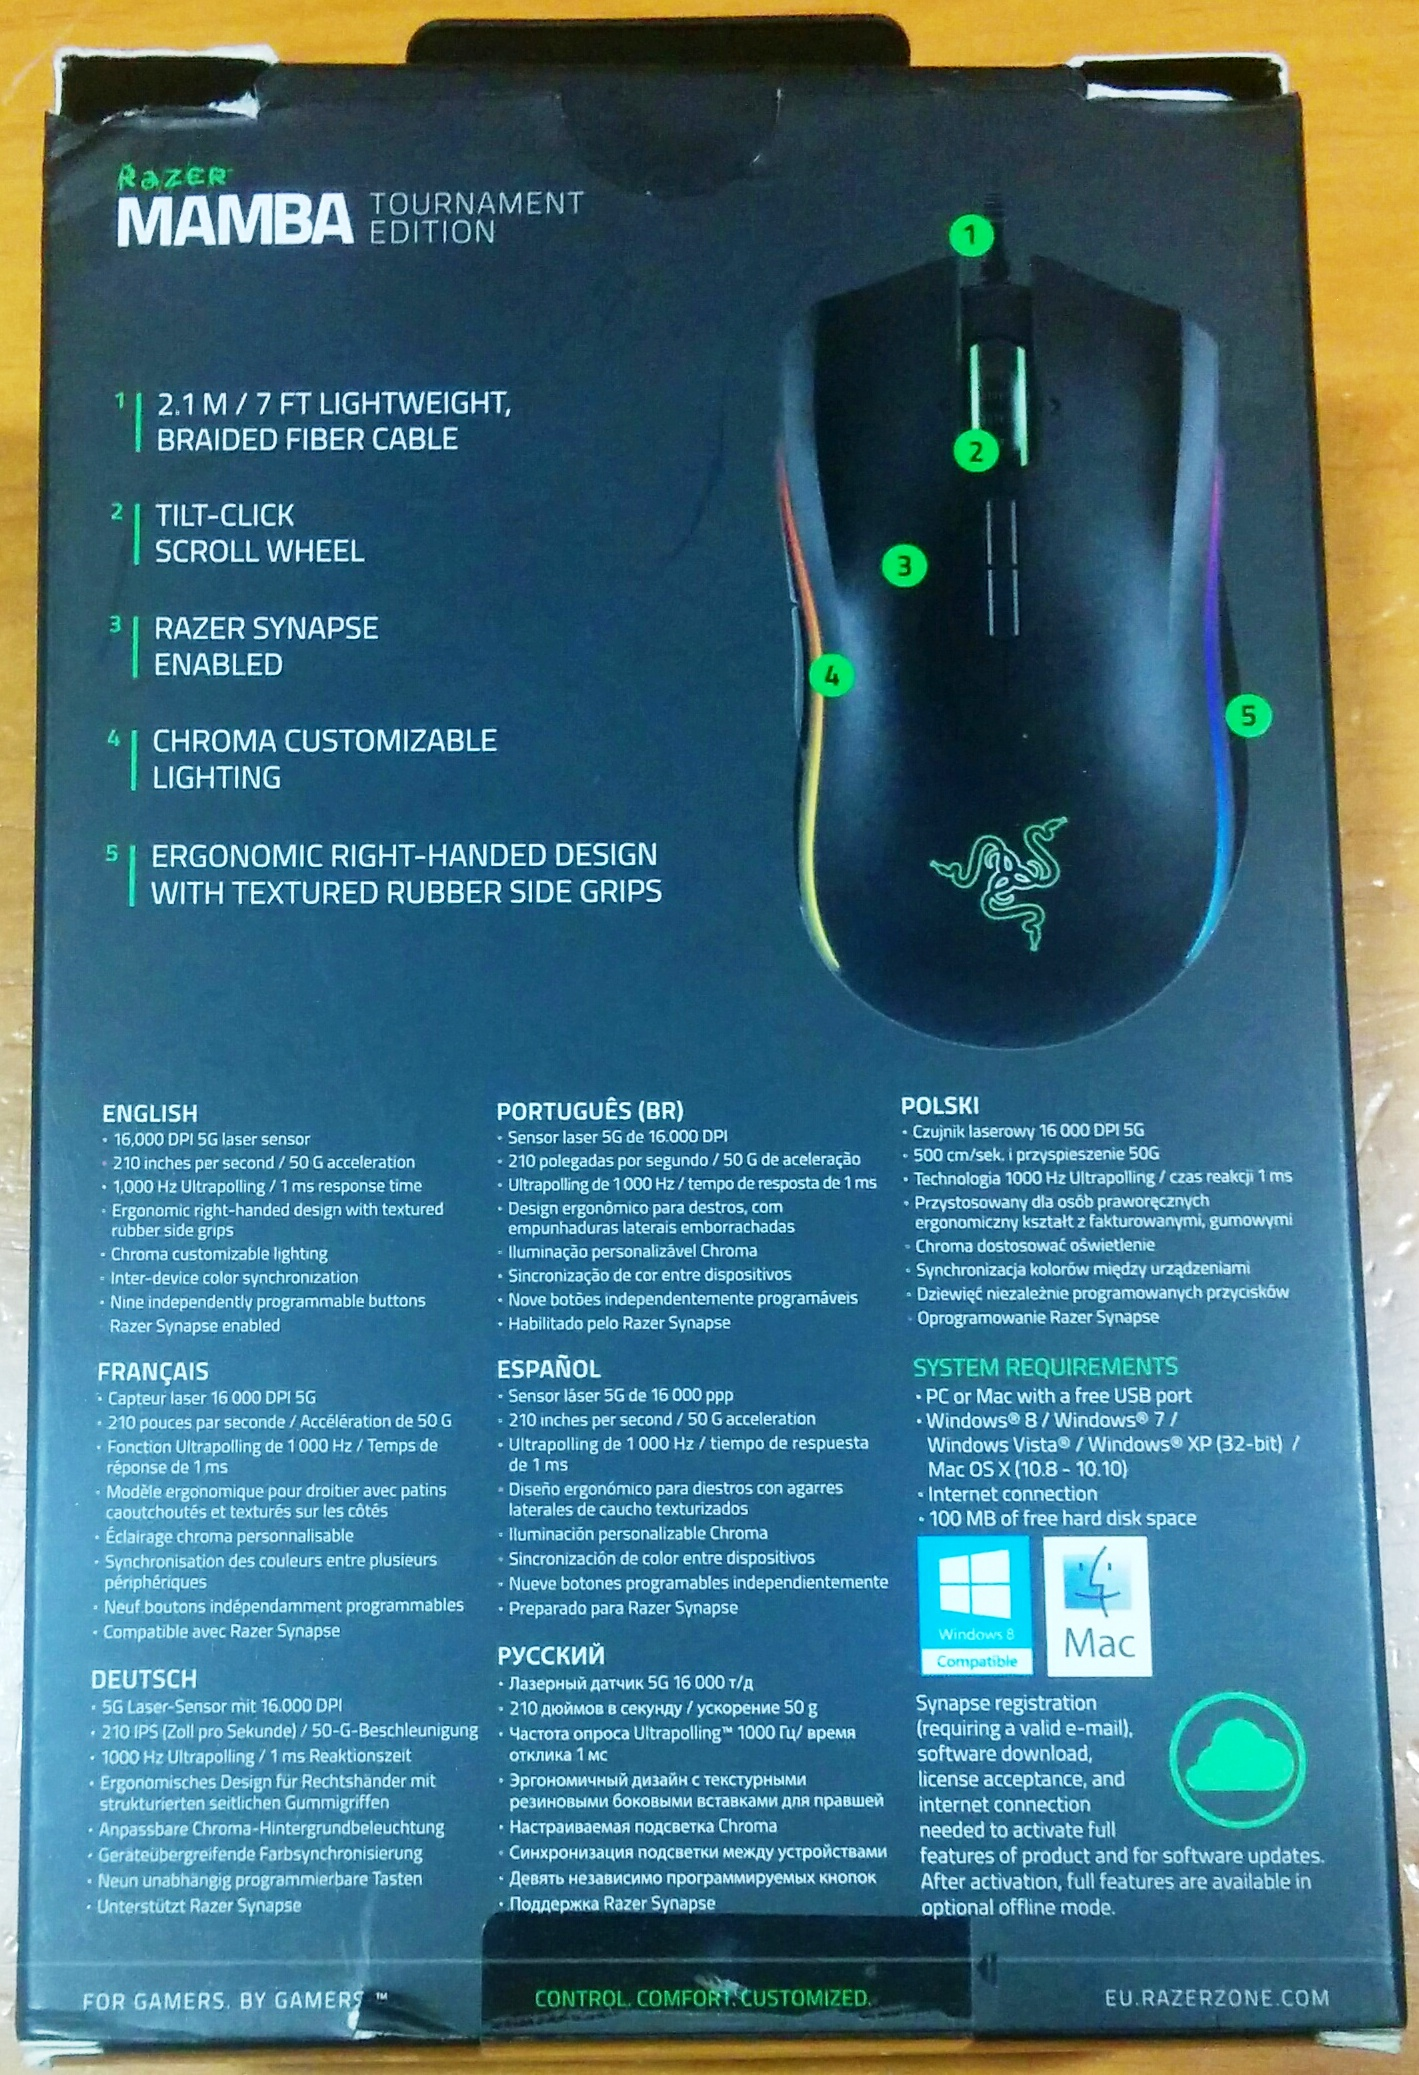 Ratón gaming Razer Mamba Tournament Edition - Review - Página 2 de 6